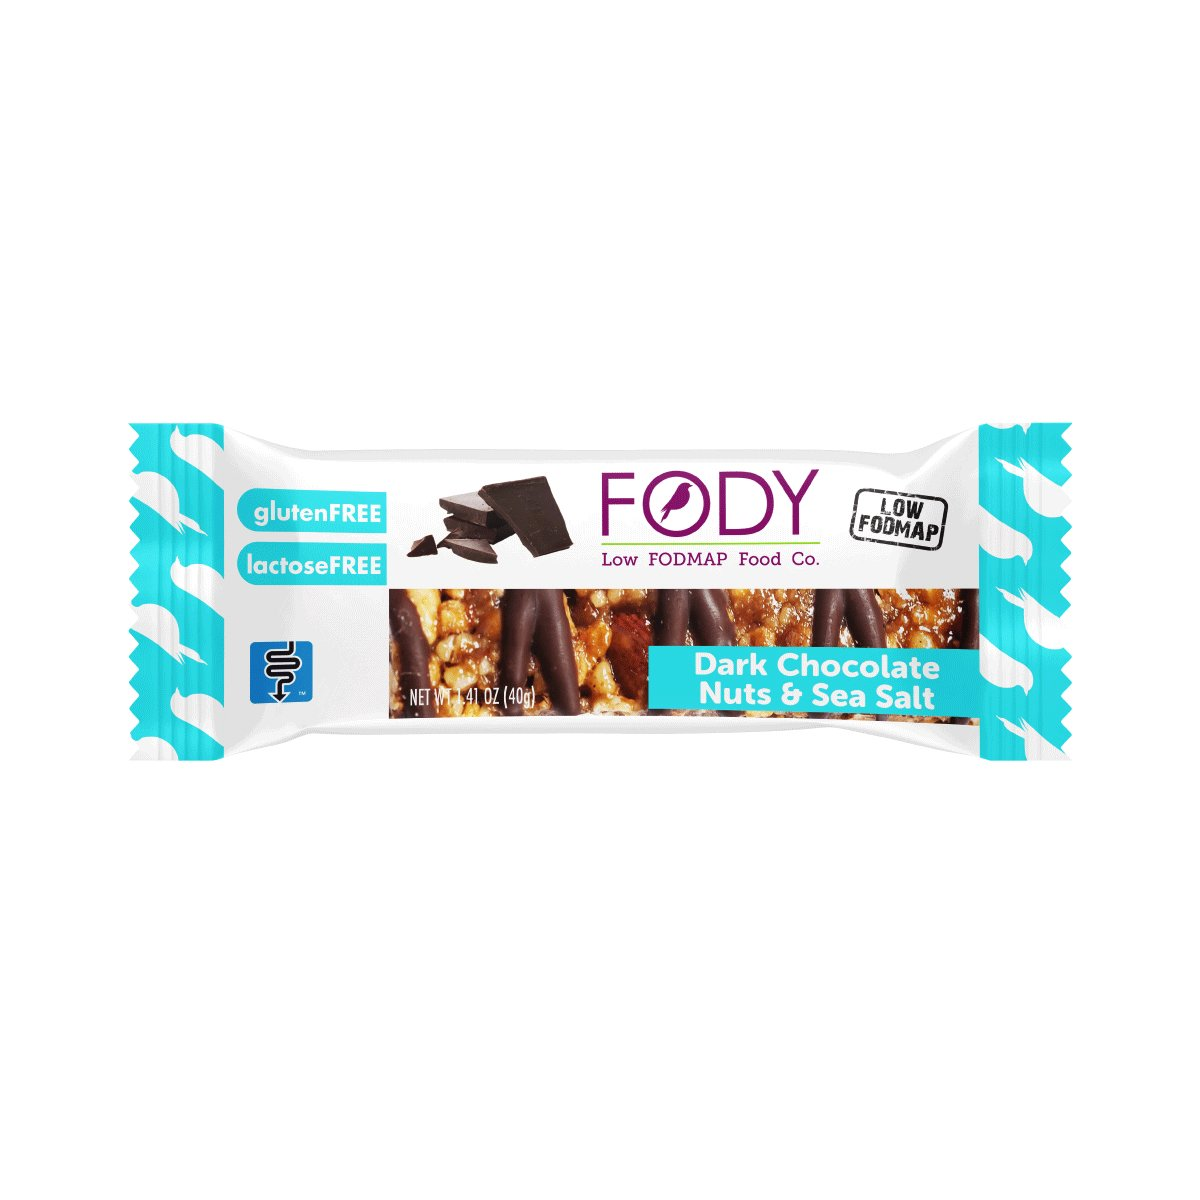 Fody Food Co, Dark Chocolate Nuts & Sea Salt Bars, Low FODMAP and Gut Friendly, Gluten and Lactose Free, 6 Pack of Bars